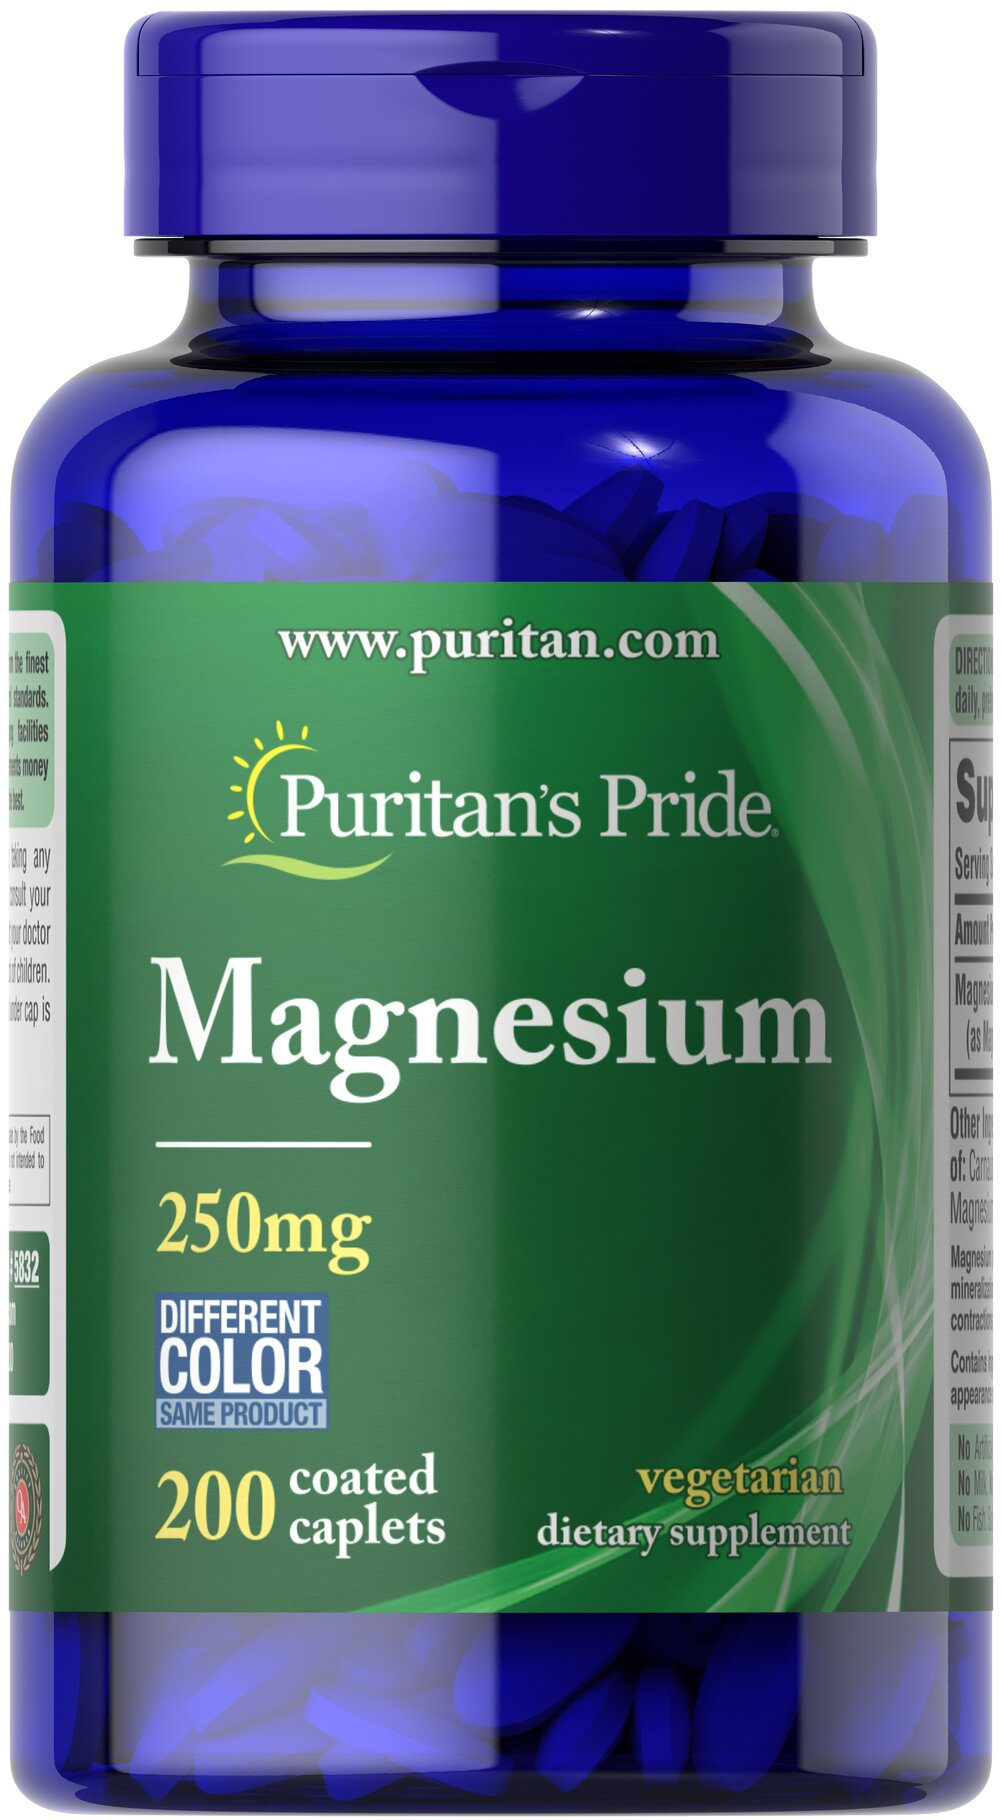 Magnesium 250 mg <p>Magnesium offers another option, besides Calcium, for supporting bone health.** Magnesium plays an essential role in maintaining bone mineralization, and is also involved in muscle contractions and nerve impulses.** Adults can take one caplet daily with a meal.</p> 200 Caplets 250 mg $12.99